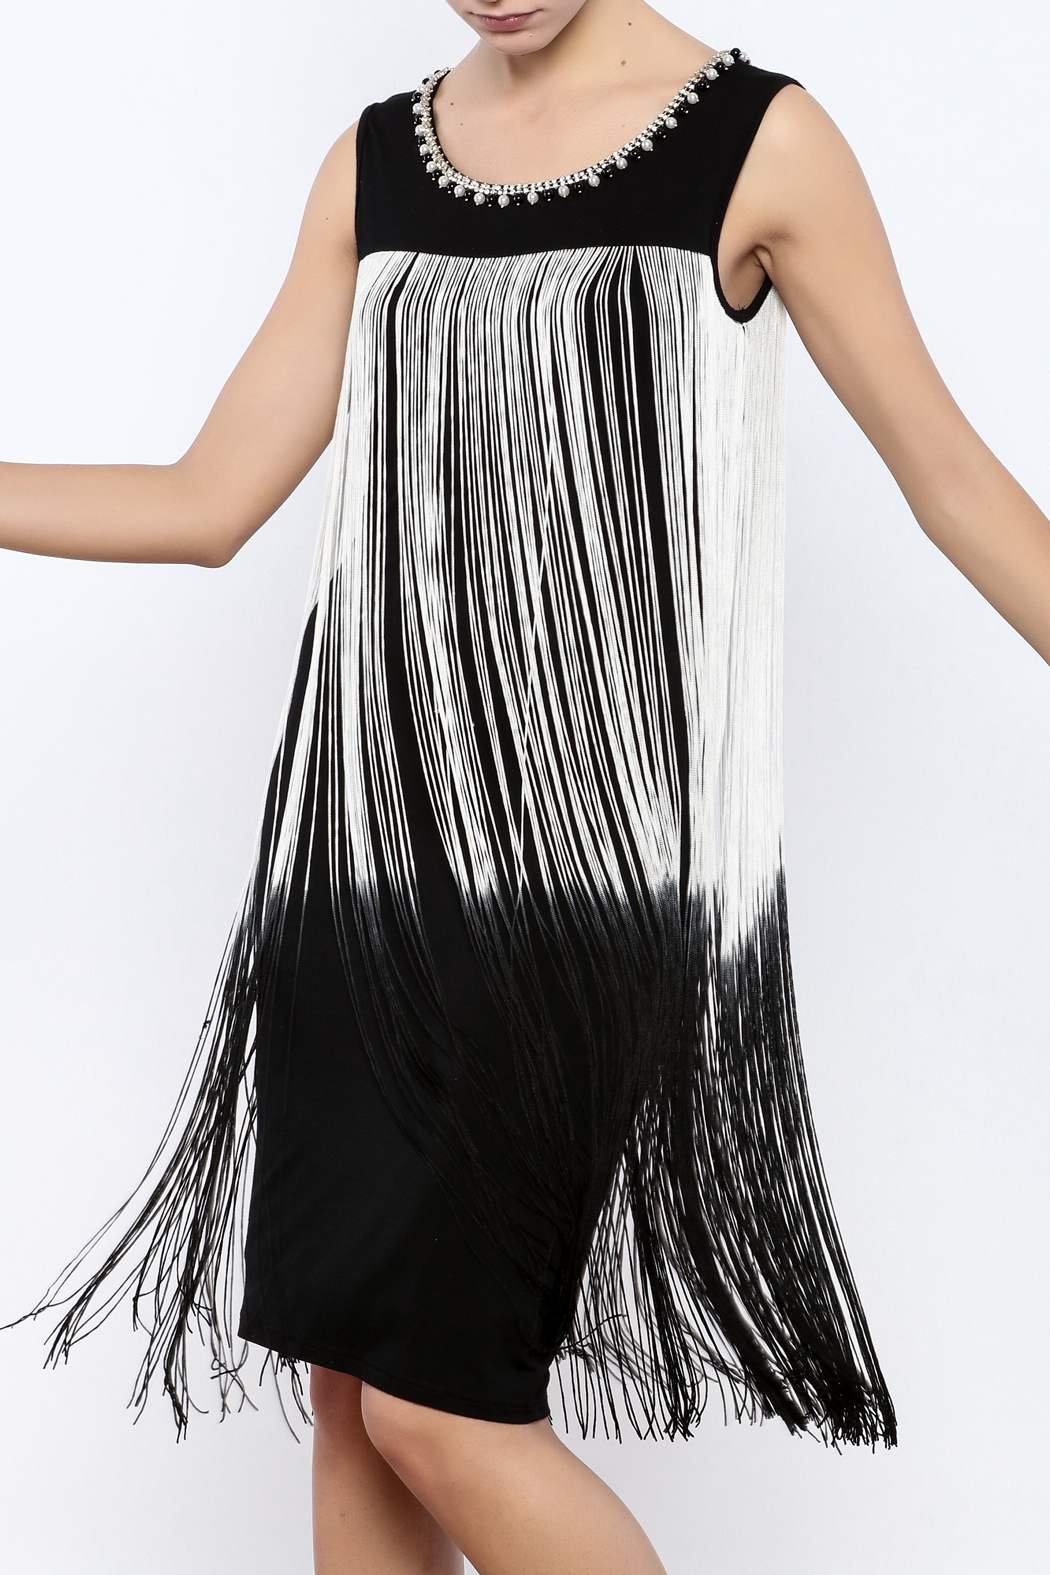 Frank Lyman Ombre Fringe Dress From Canada By Didi S Boutique Shoptiques